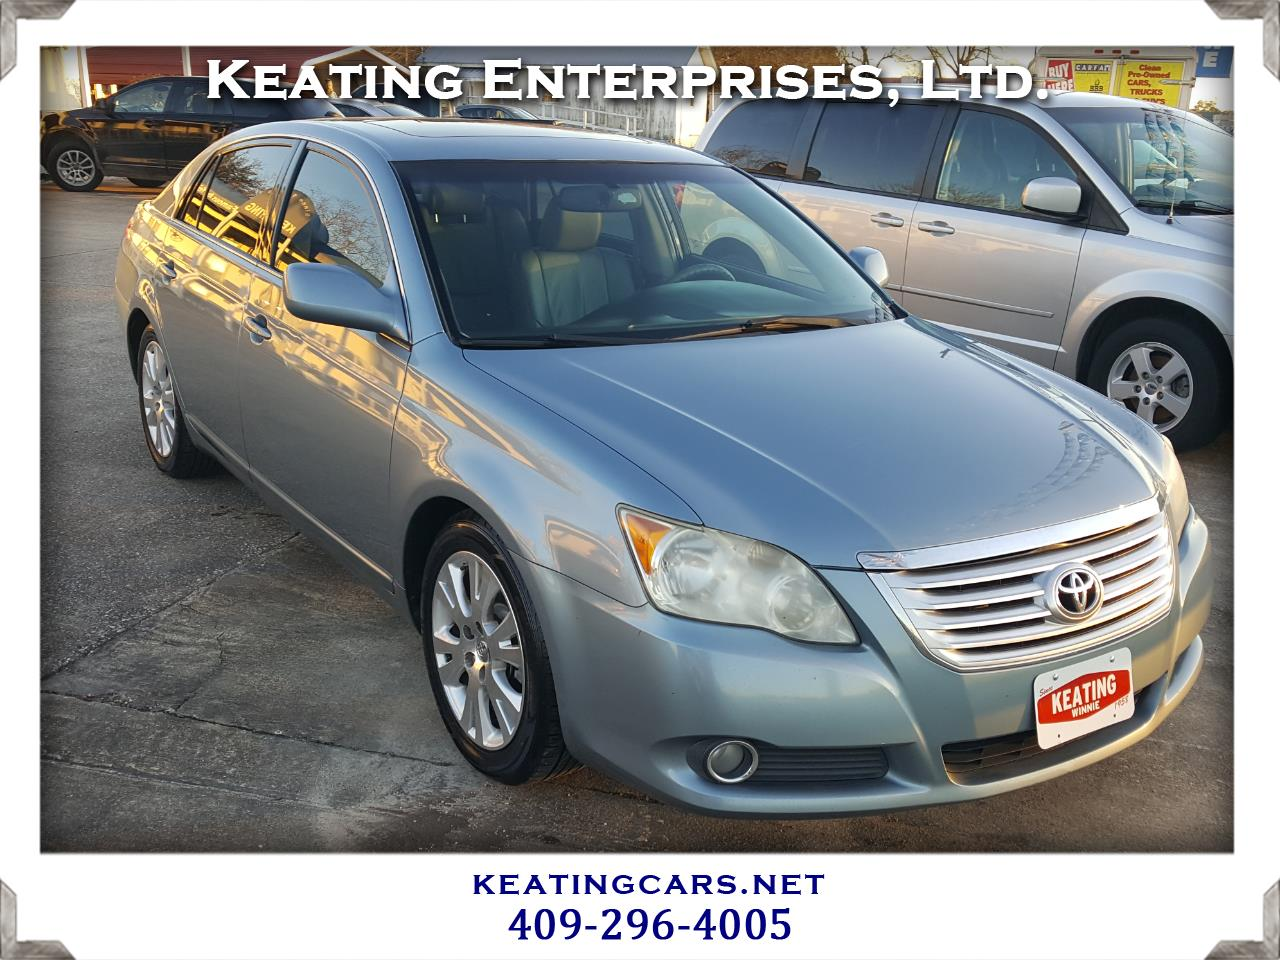 2009 Toyota Avalon 4dr Sdn Limited (Natl)